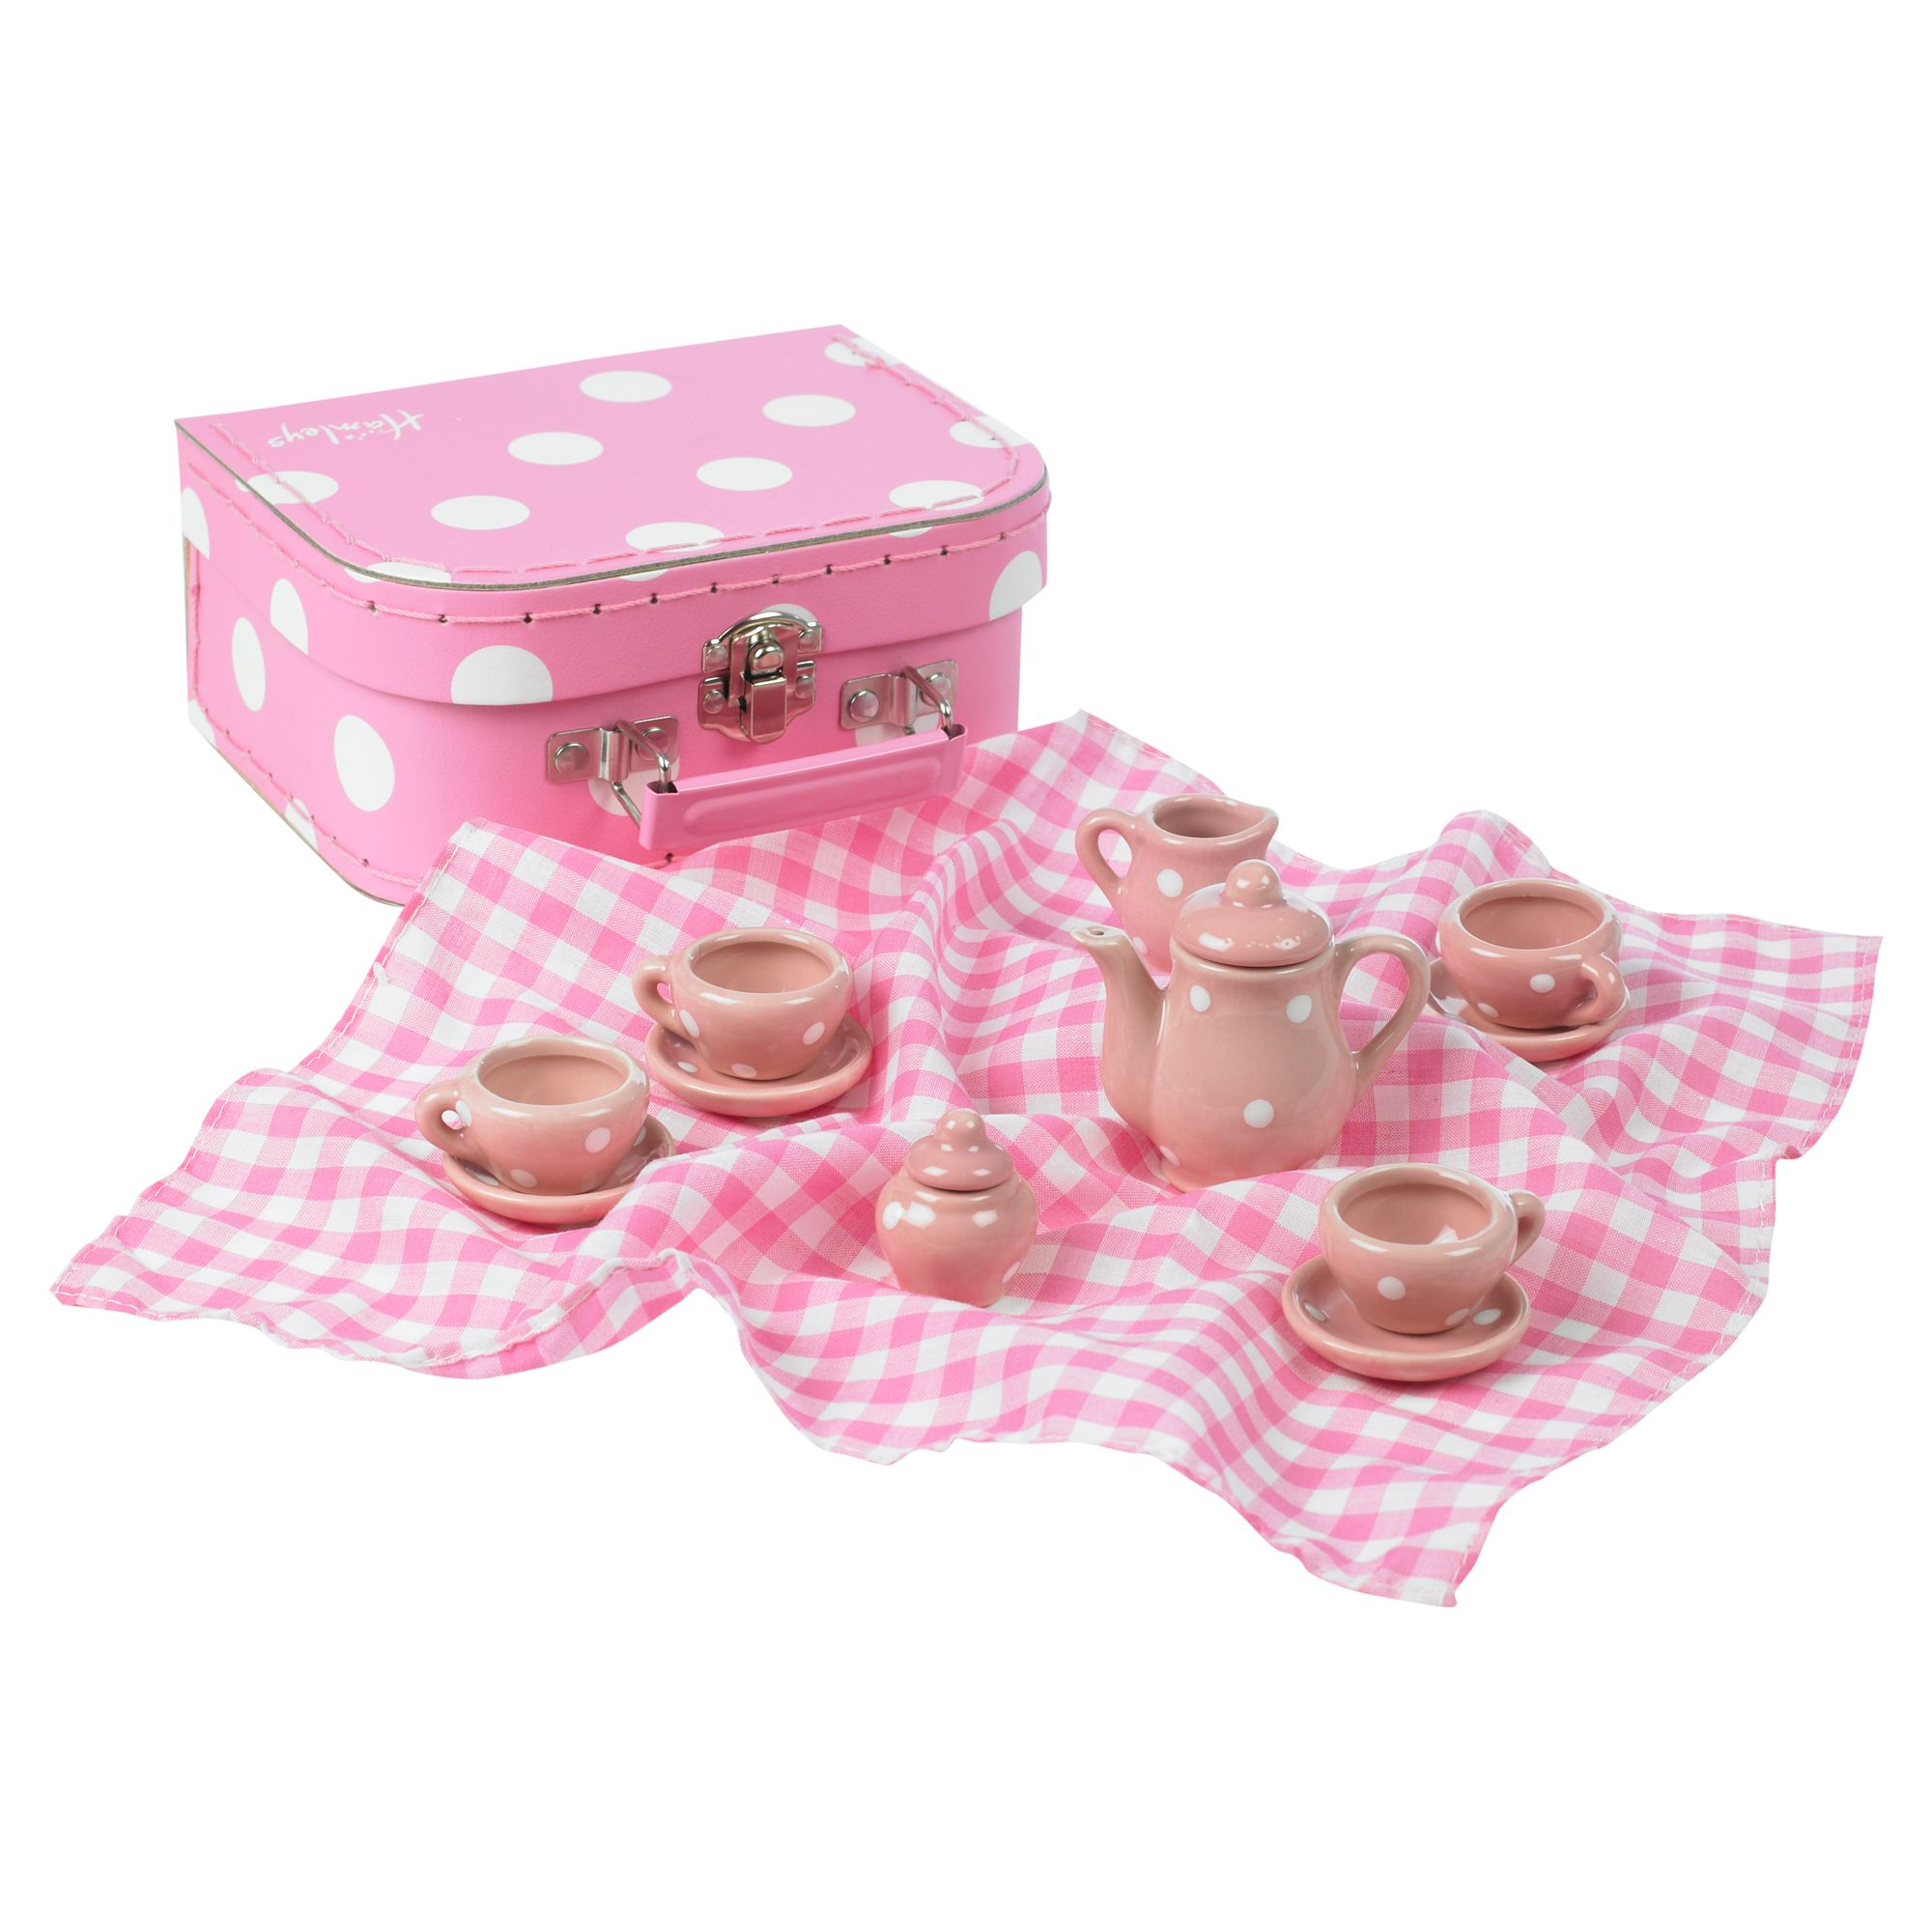 My first dolly tea set